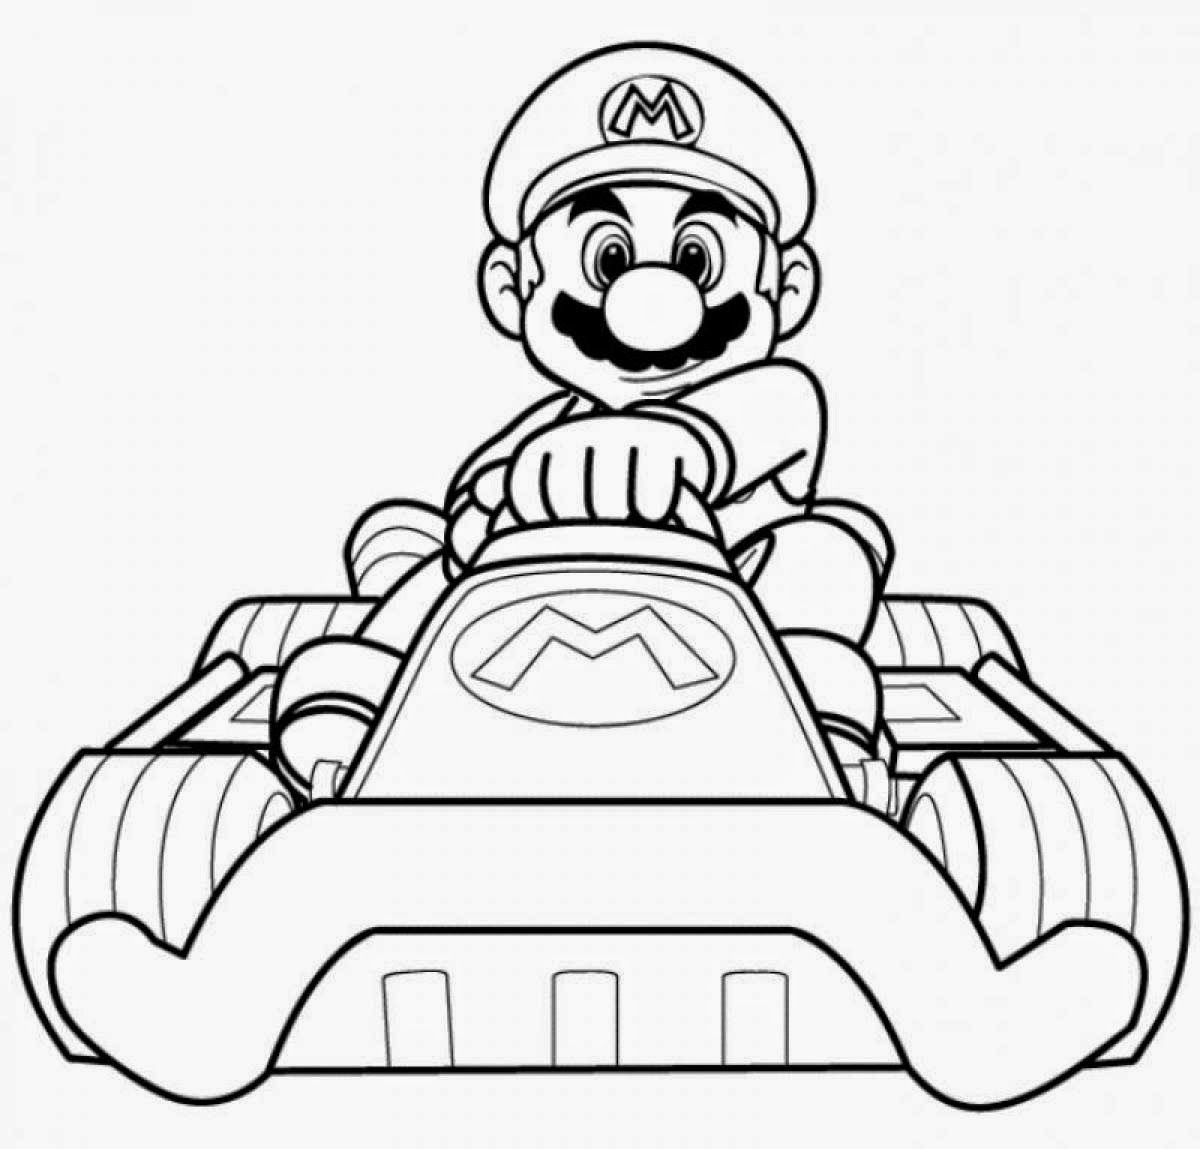 Printing Coloring Pages Mario Kart 8 Coloring Home